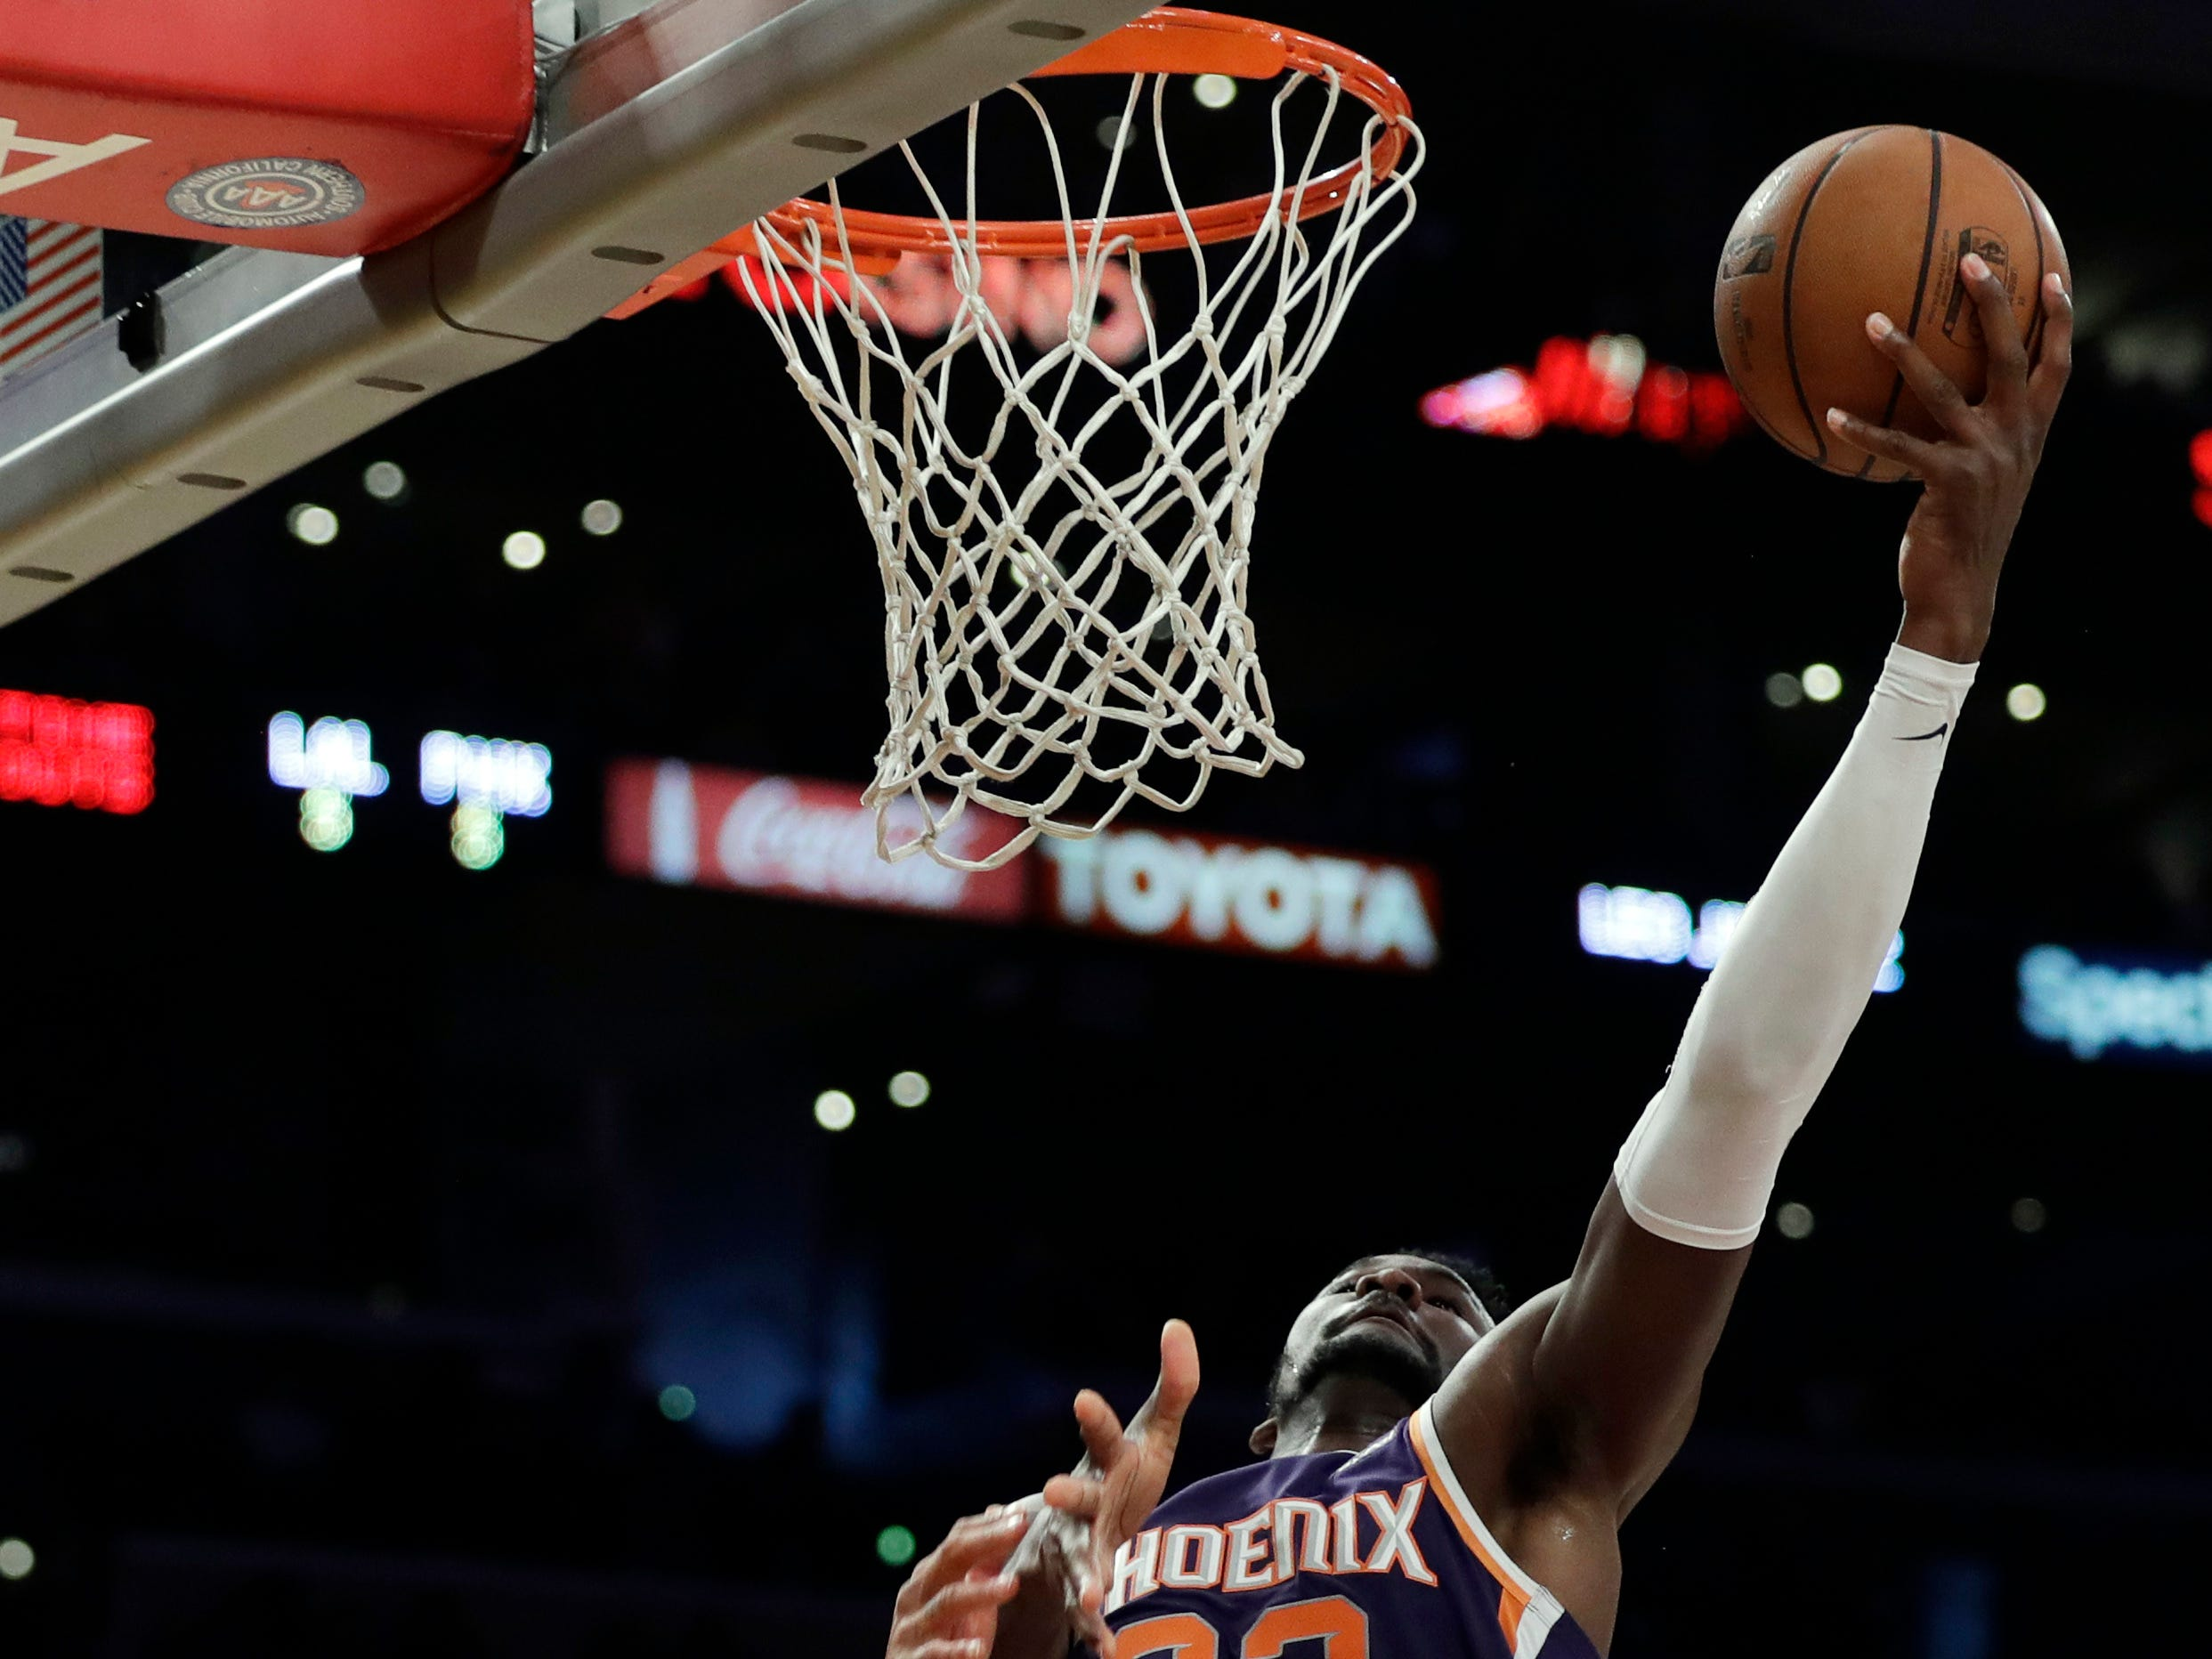 Phoenix Suns' Deandre Ayton (22) drives past Los Angeles Lakers' Brandon Ingram during the first half of an NBA basketball game Sunday, Dec. 2, 2018, in Los Angeles. (AP Photo/Marcio Jose Sanchez)